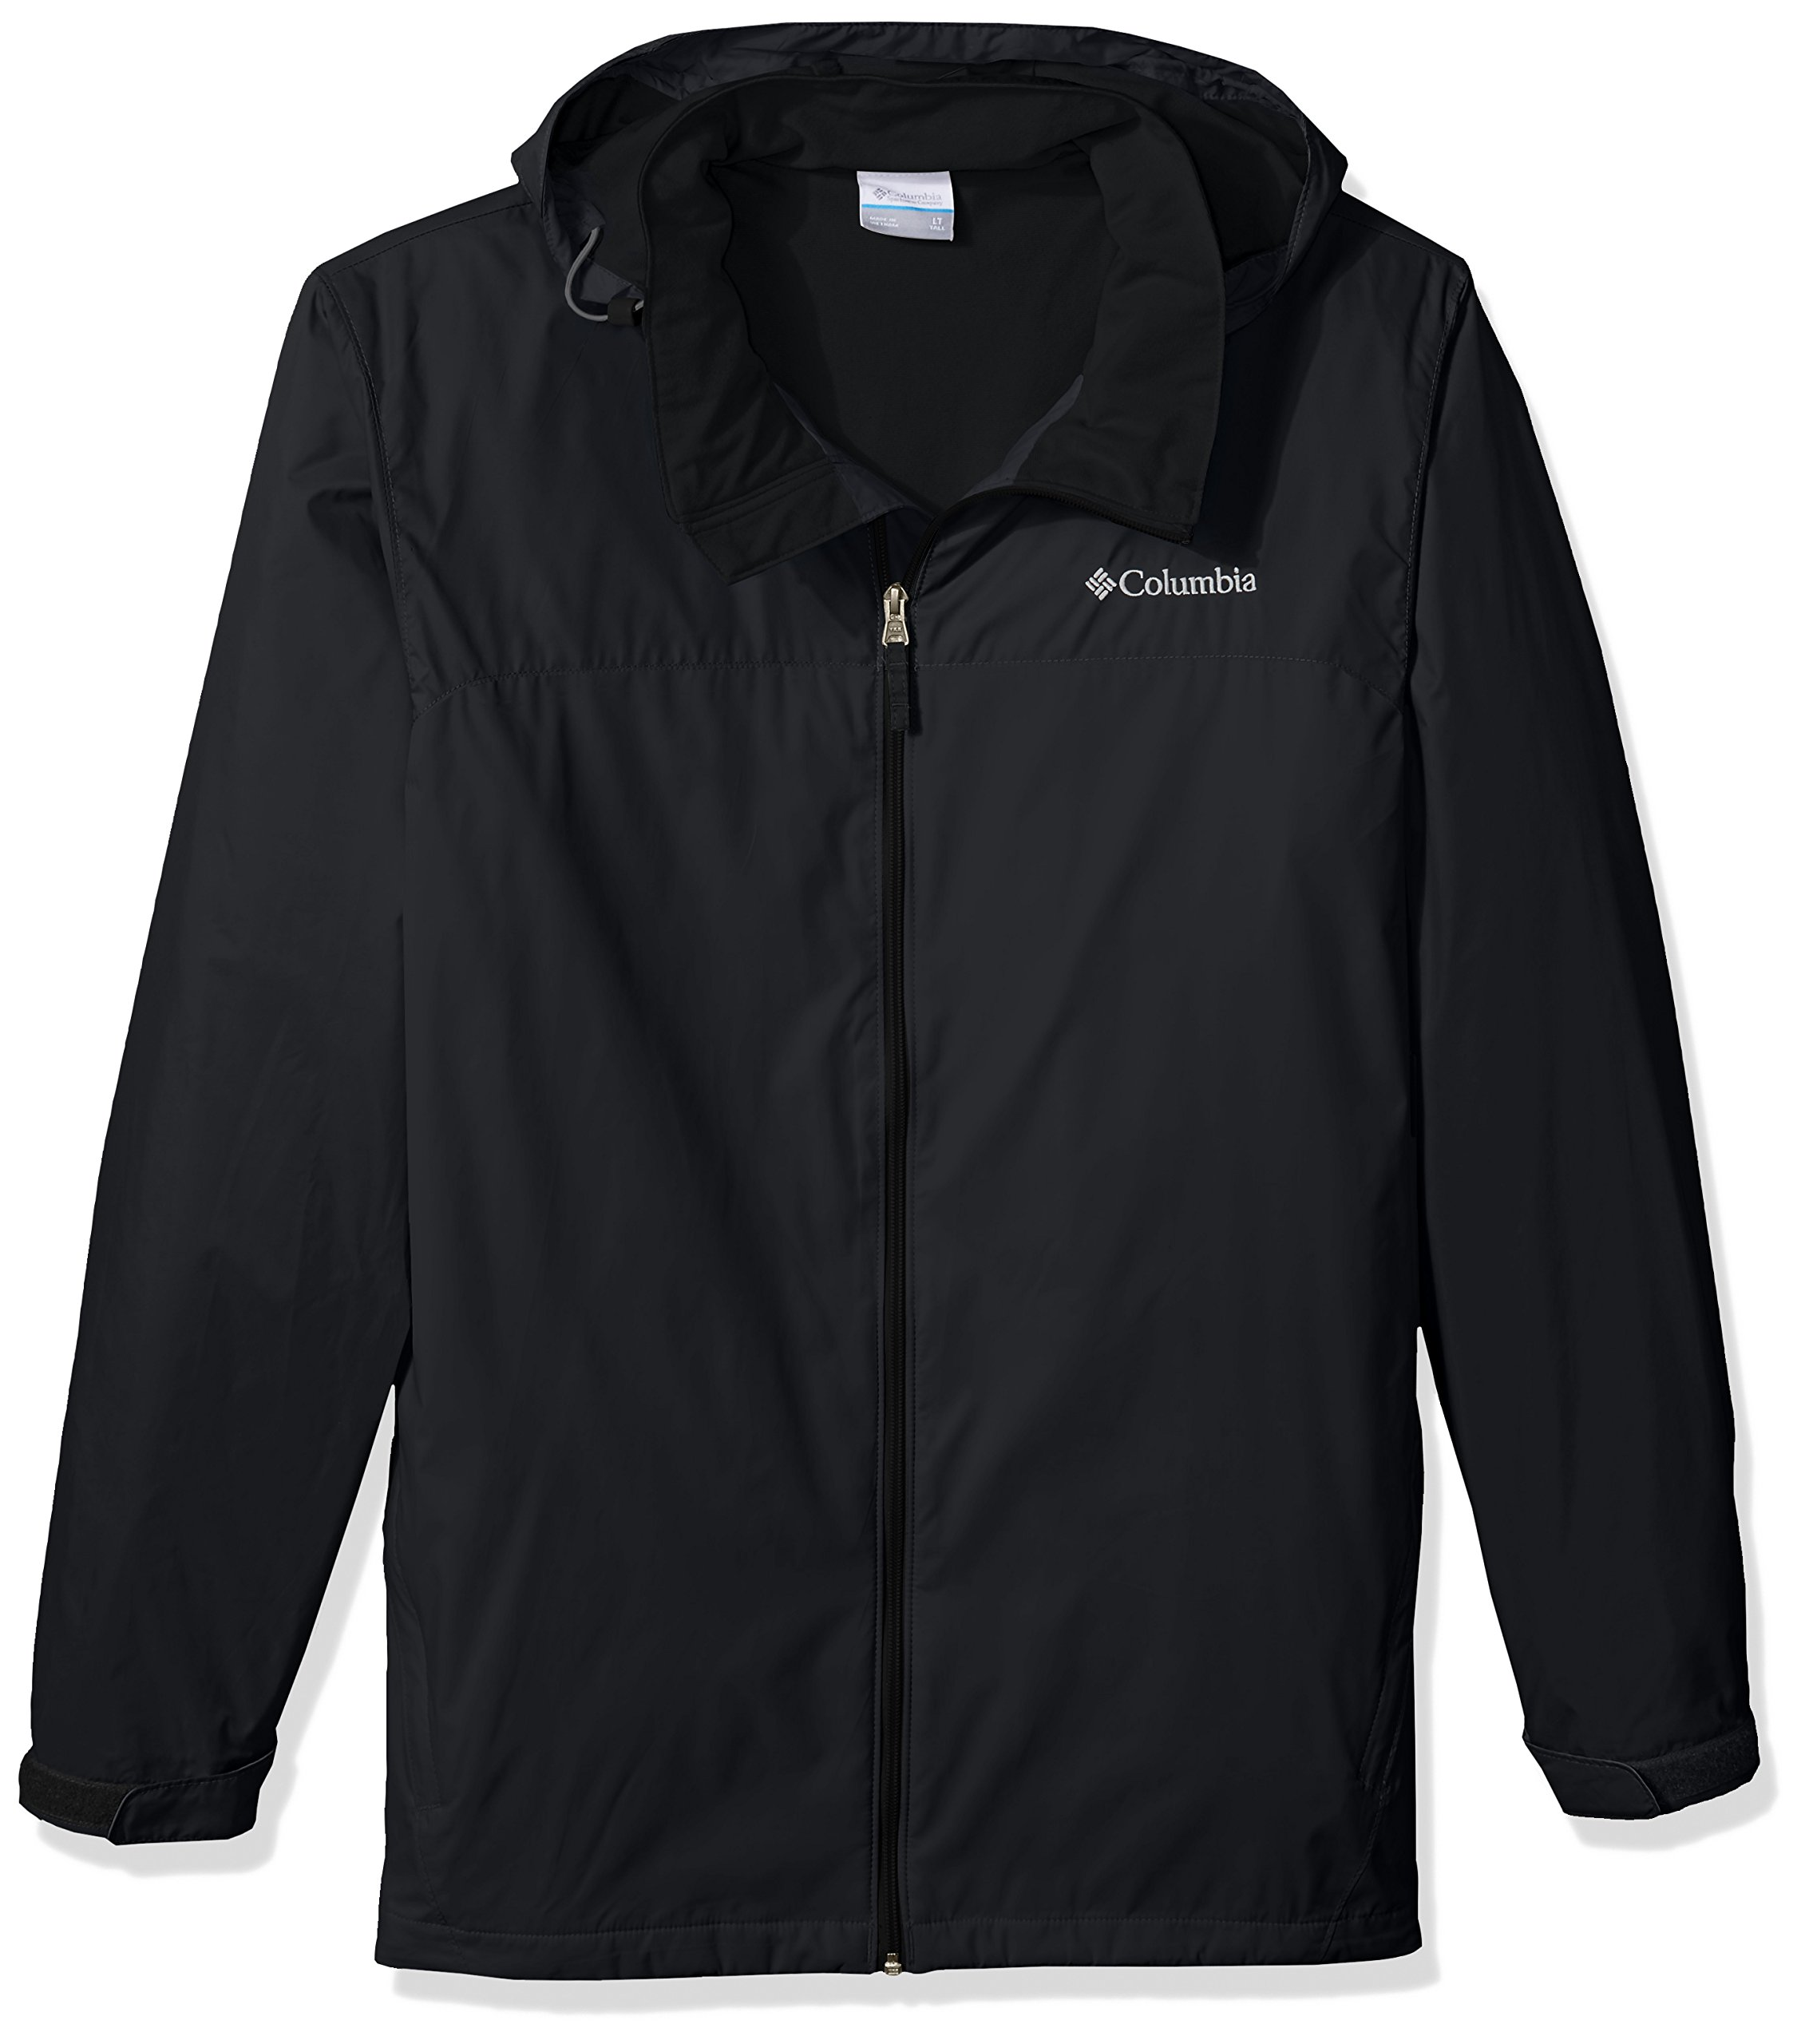 Columbia Men's Big and Tall Glennaker Lake Lined Rain Jacket, Black, 3XT by Columbia (Image #1)